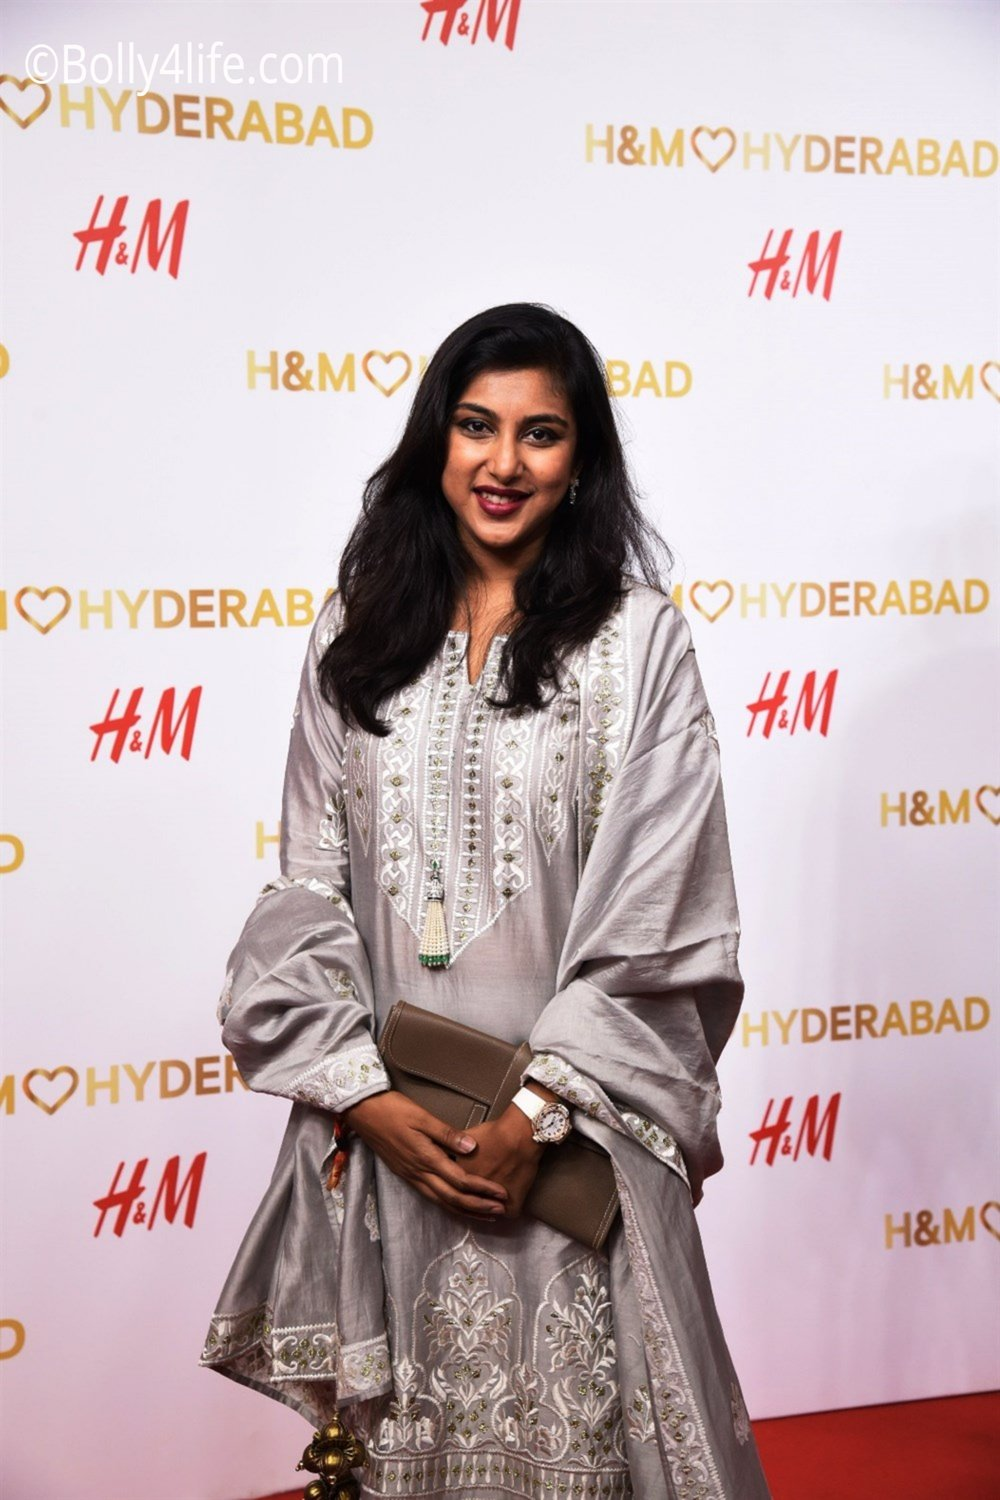 hm-hyderabad-grand-opening-at-inorbit-mall-3487cdf.jpg